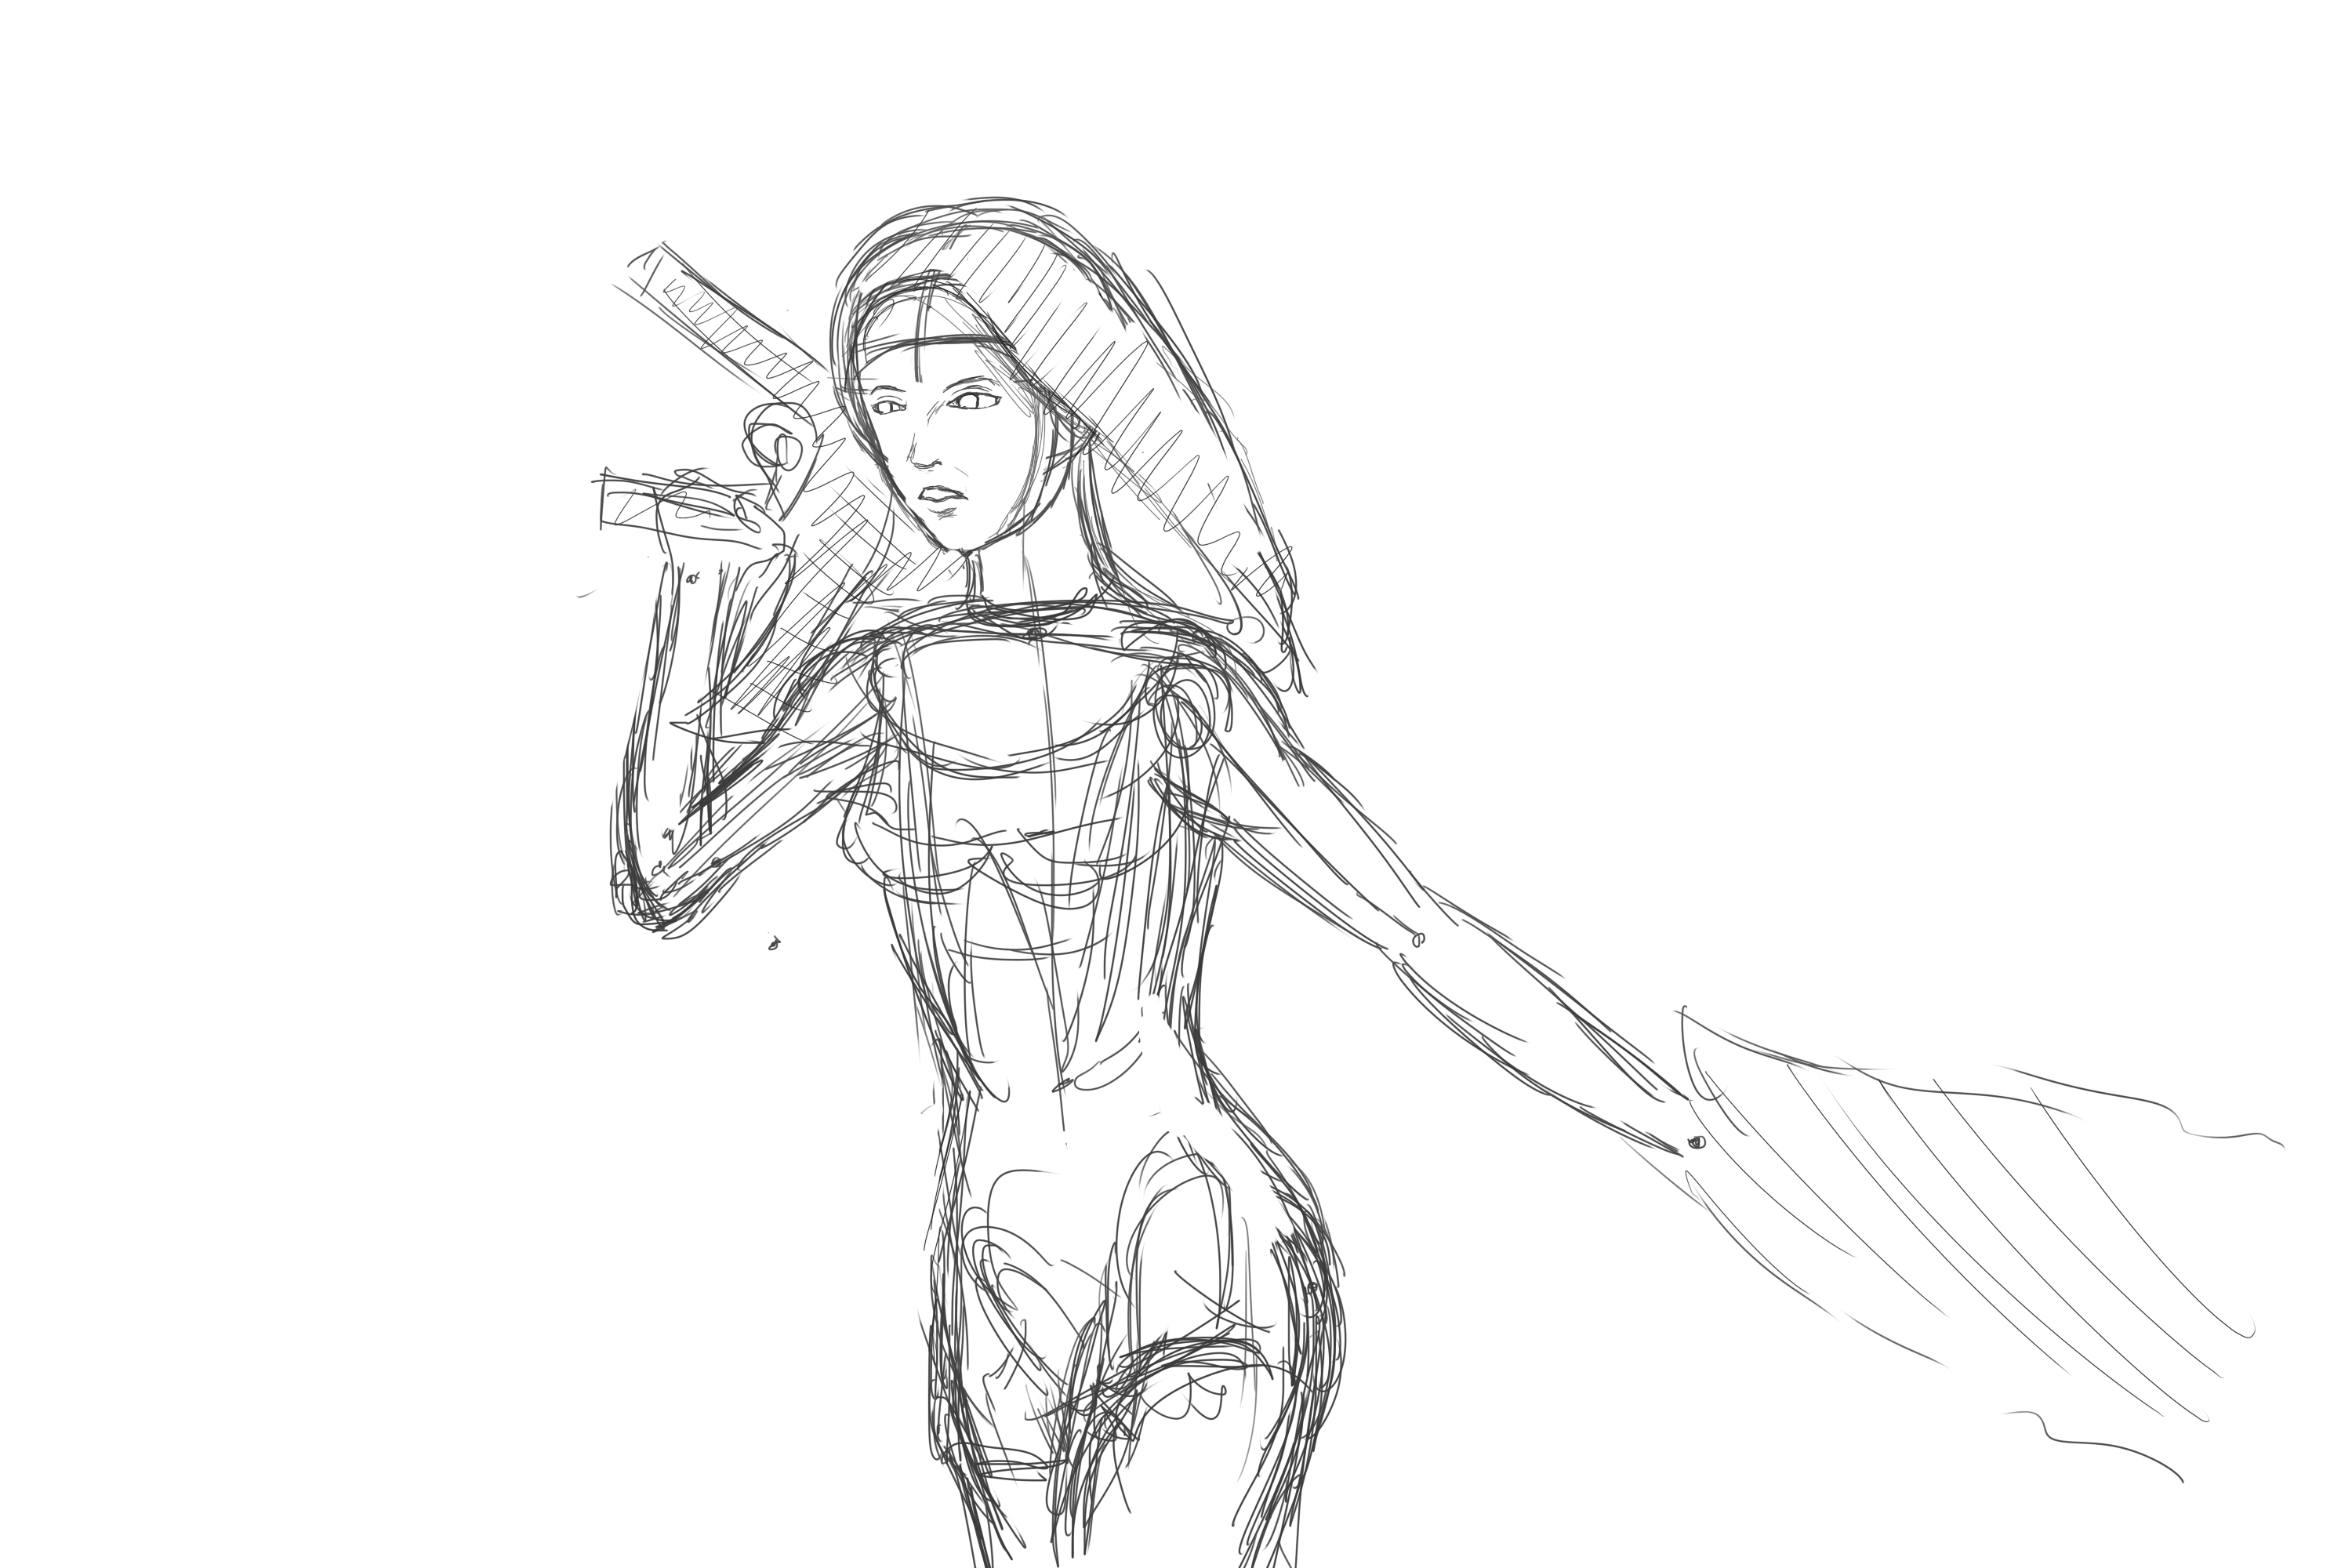 3000x2000 Nun With A Gun Sketch (Wip) By A Girl In A Sweater